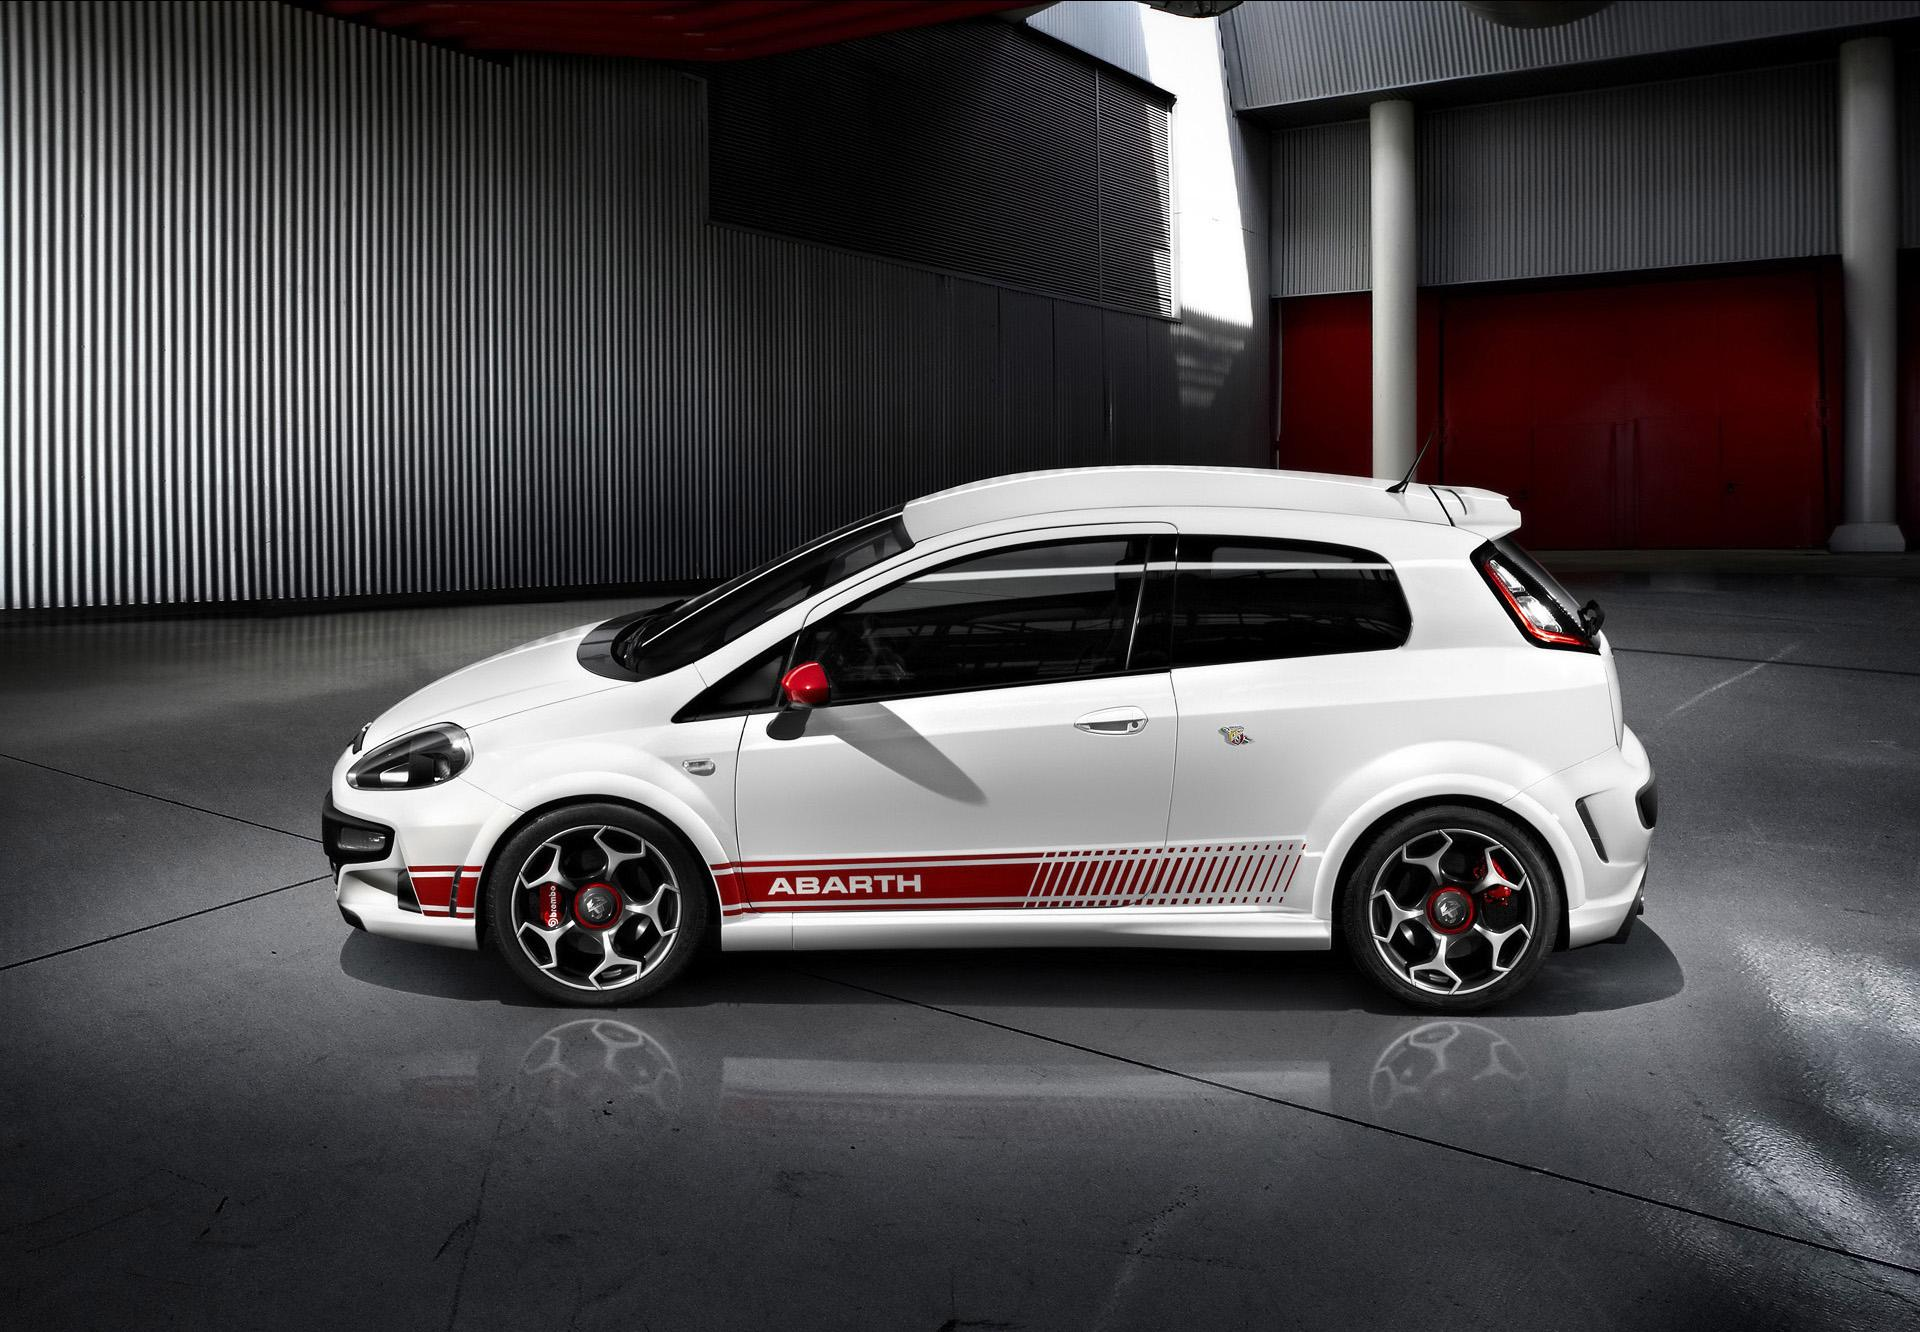 2010 abarth punto evo news and information - conceptcarz